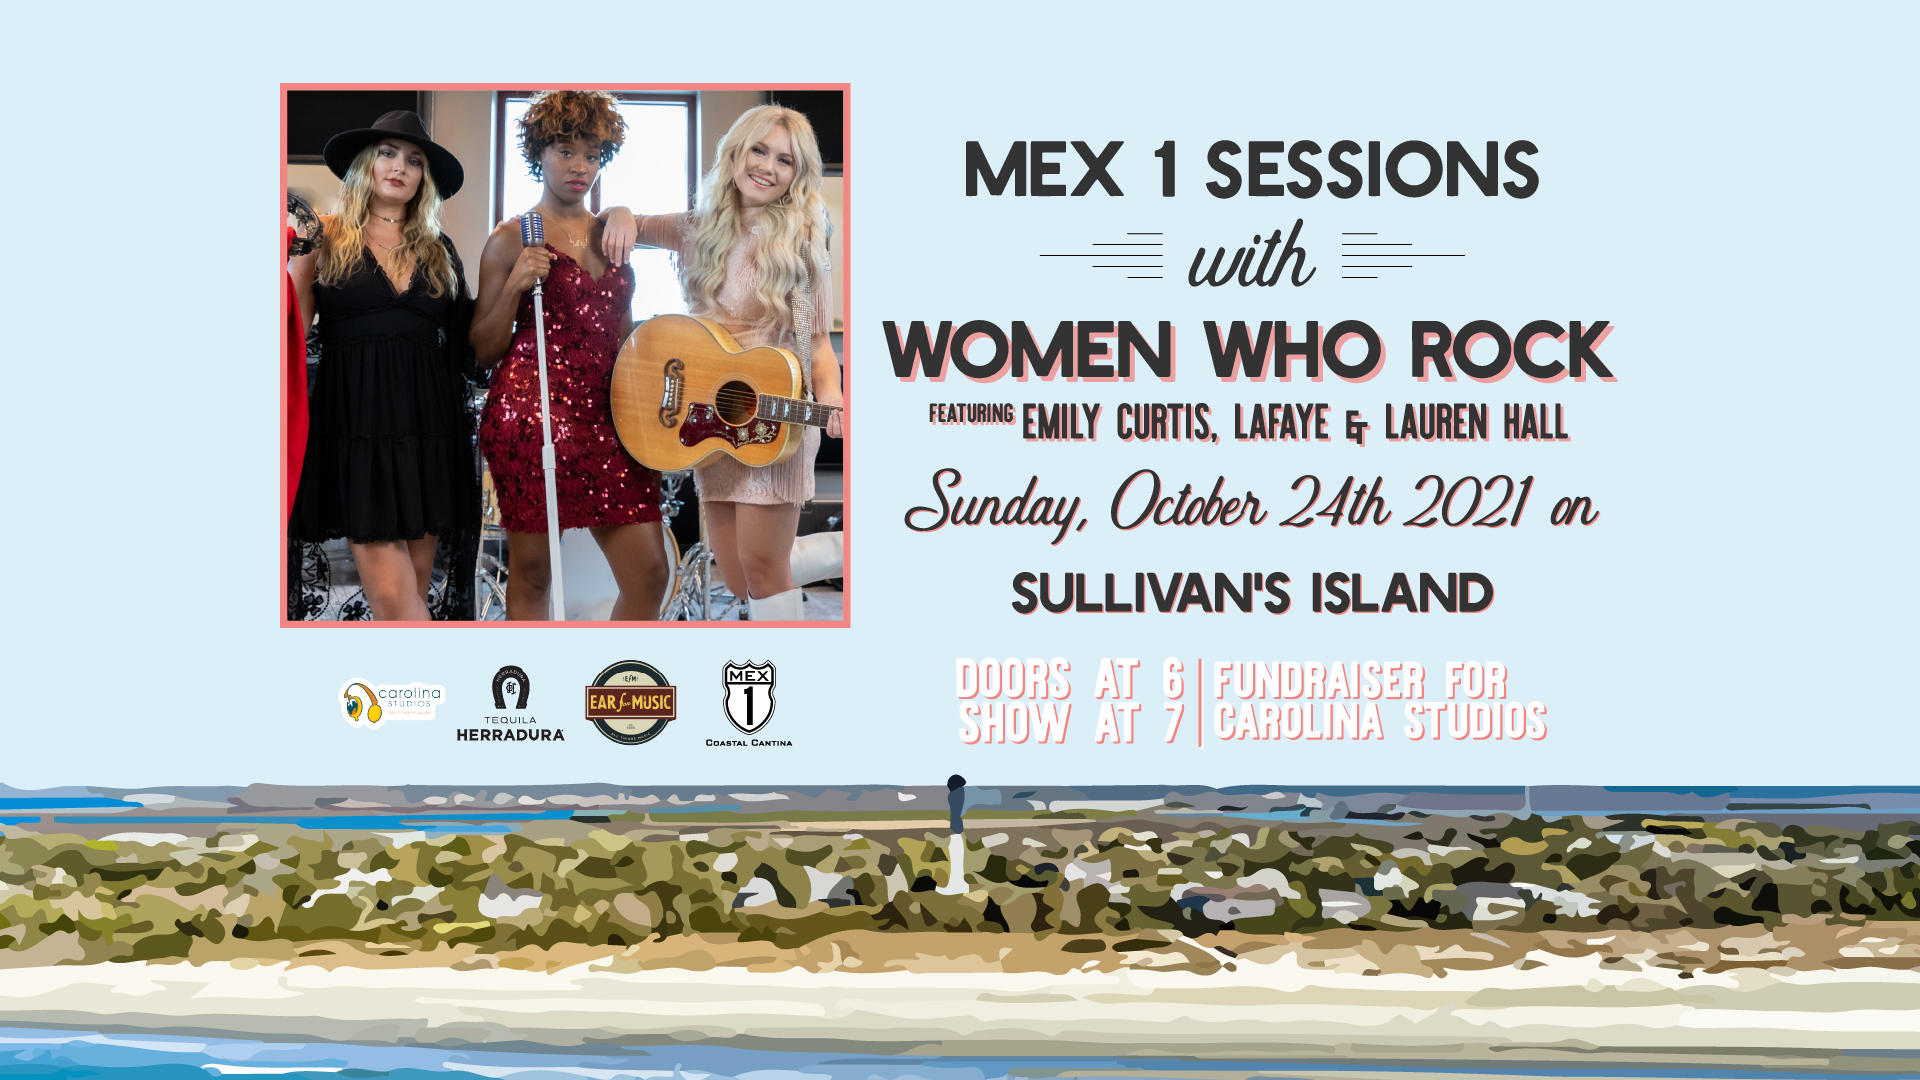 Mex 1 Sessions with Women Who Rock